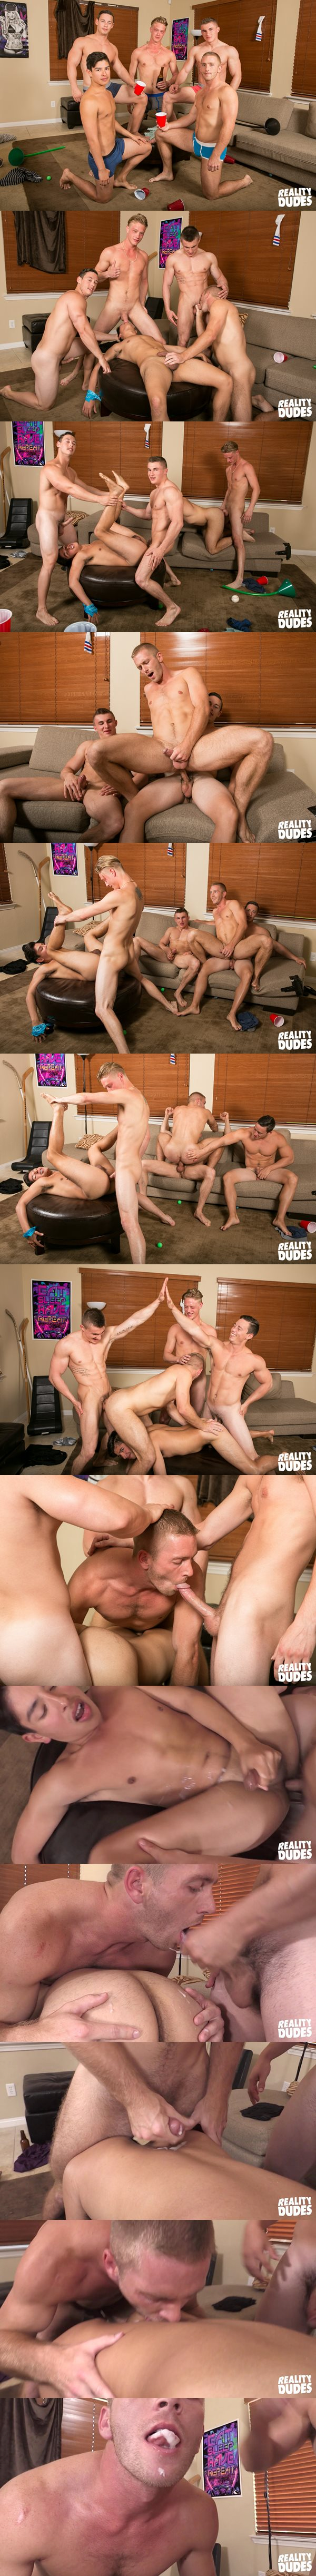 Jake Davis, Ken and Tobias bareback Scott Riley in A Spit Delight at Realitydudes 02